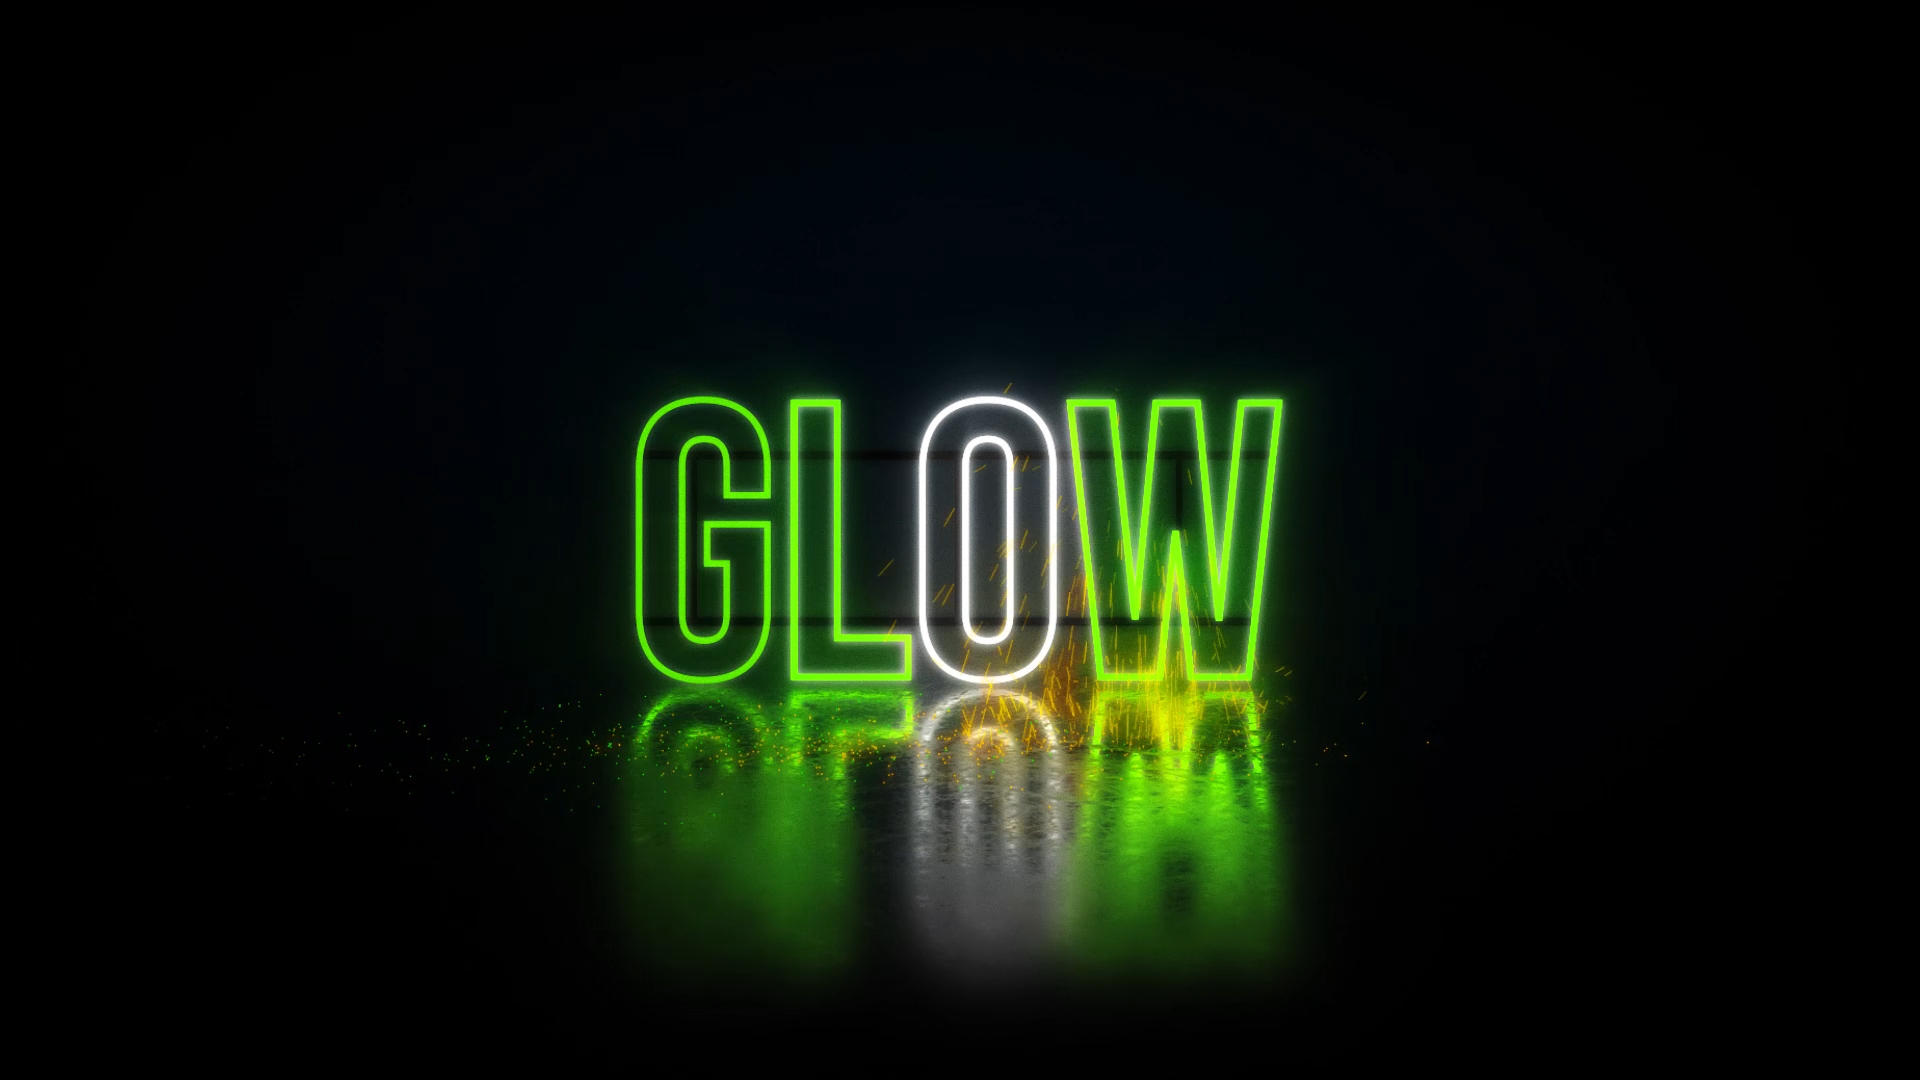 Create a Neon Sign Glow With Sparks / AvaxHome